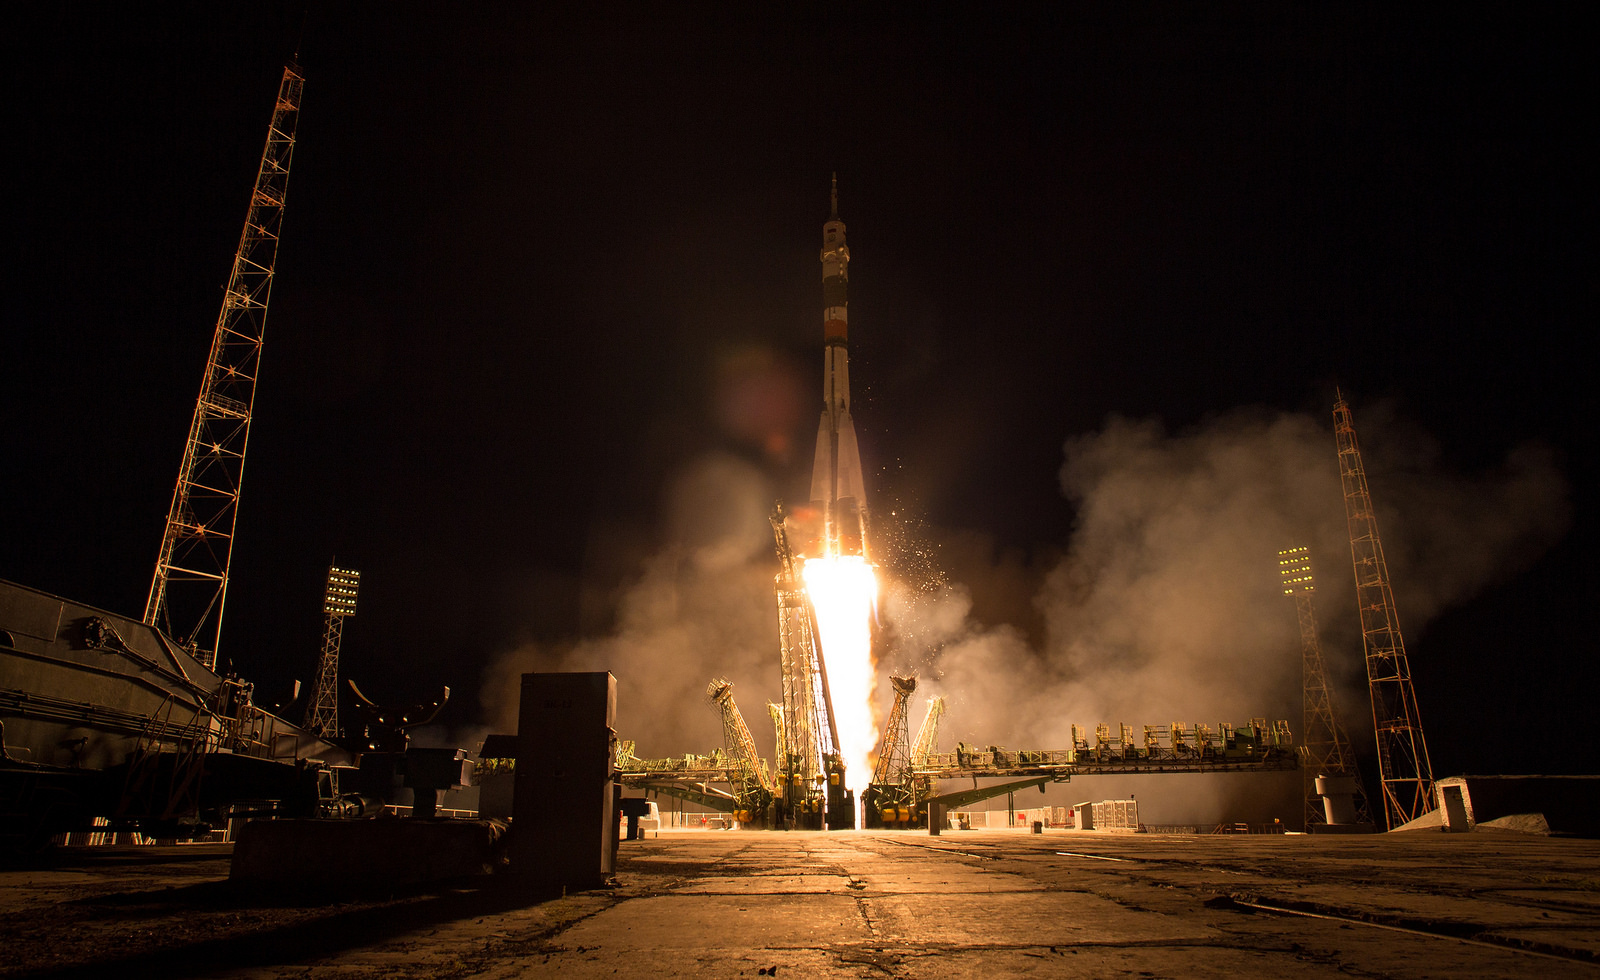 Soyuz MS-05 rocket is launched with Expedition 52